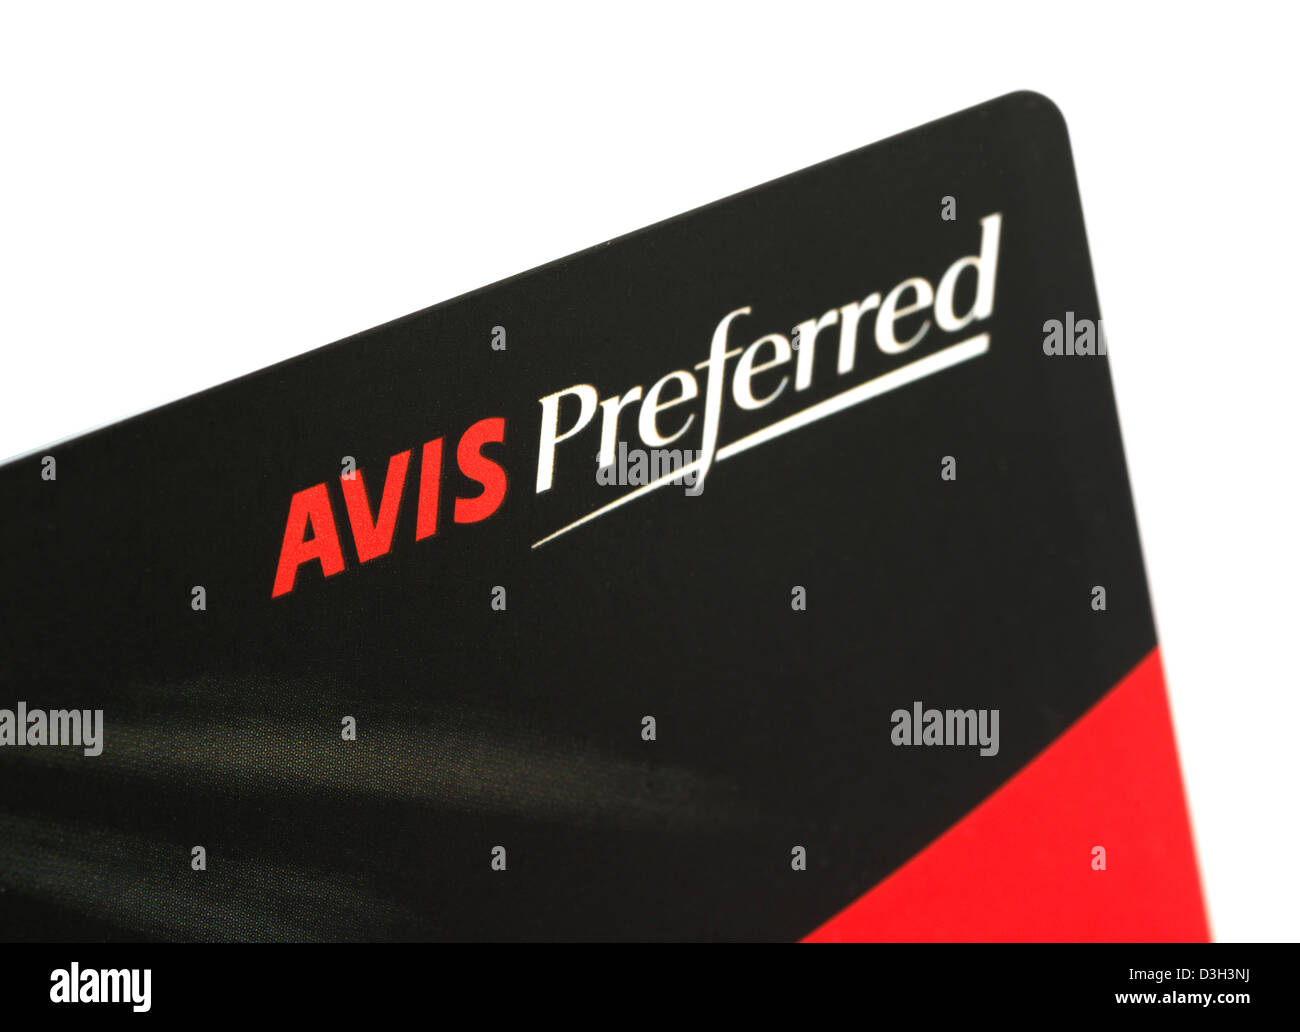 AVIS Preferred card - Stock Image